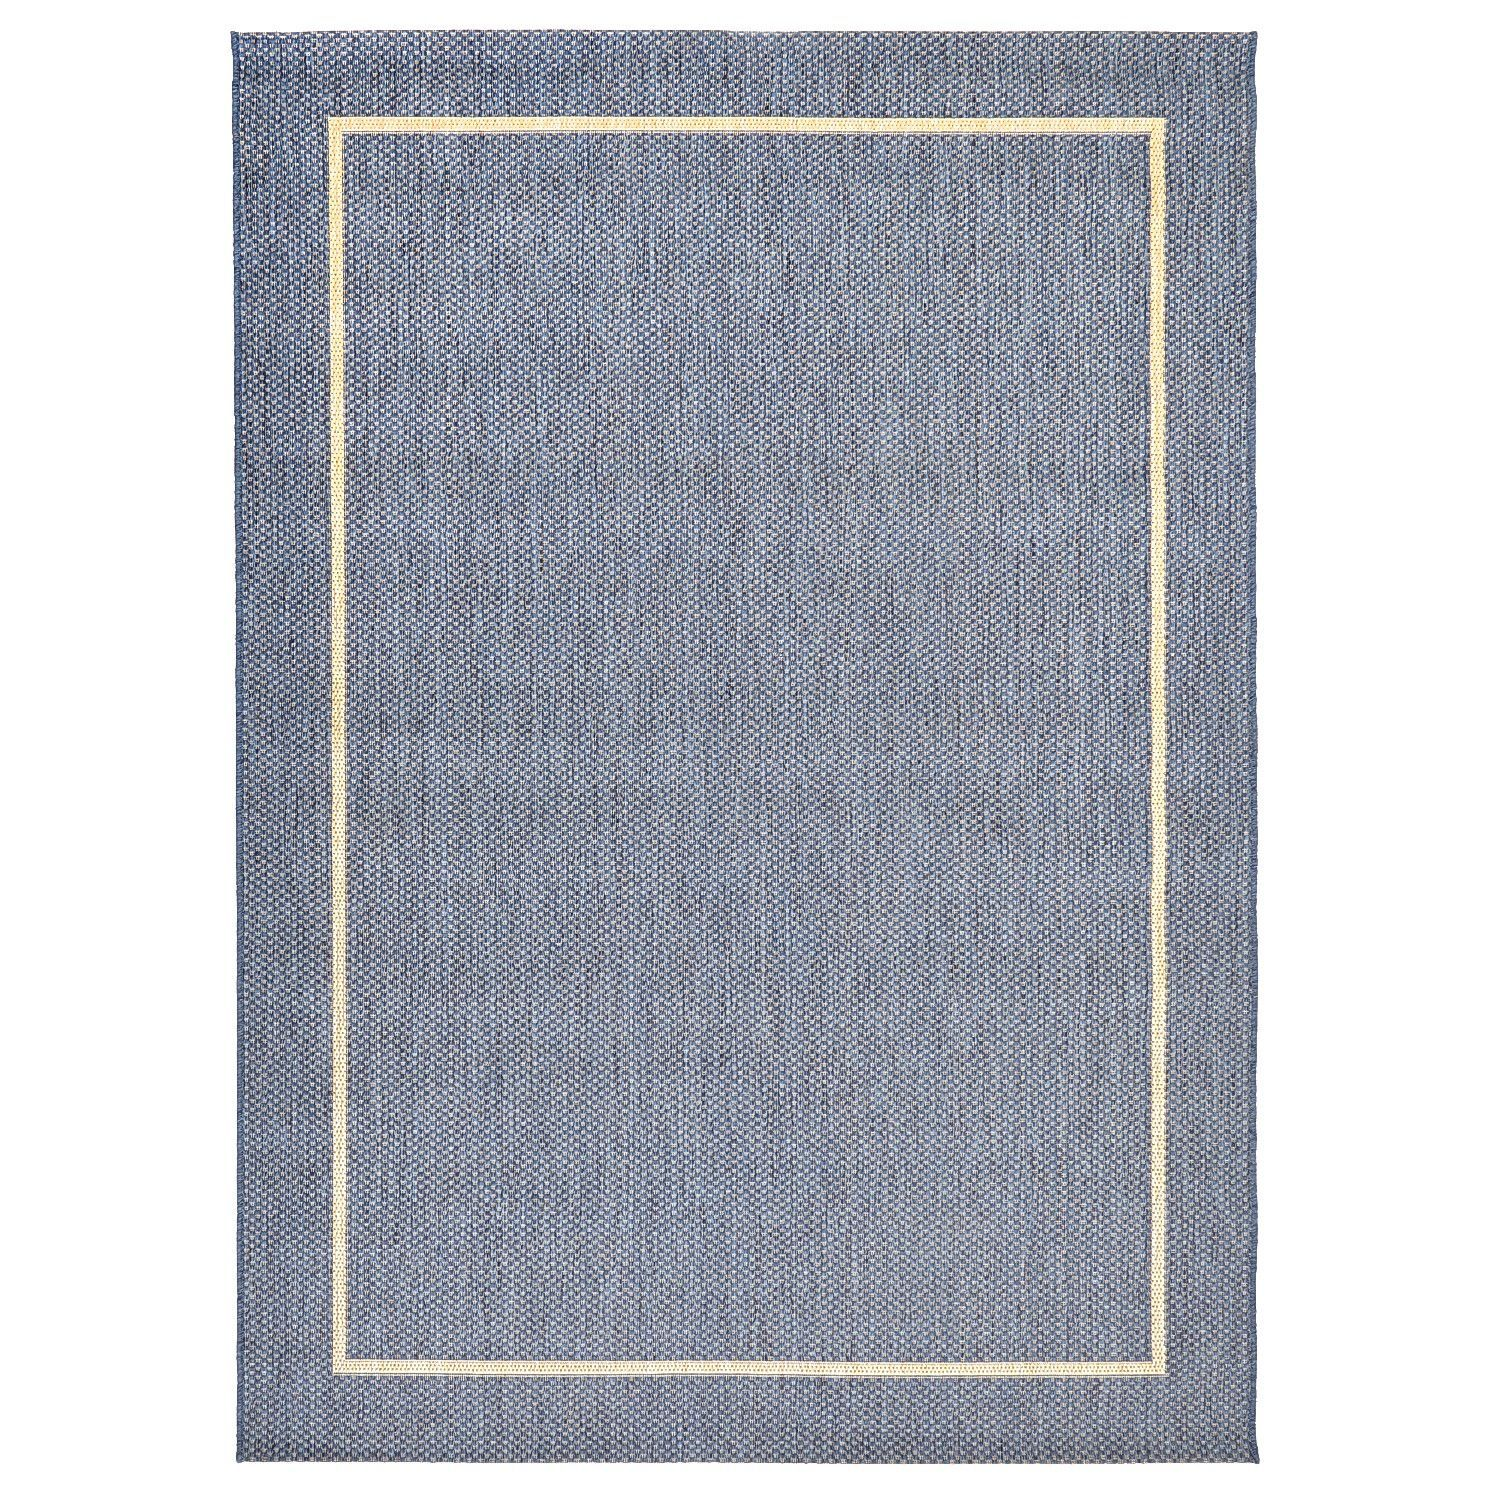 pier 1 living room rugs%0A Dobby Flatweave Rug   x   Marine or kitchen pier